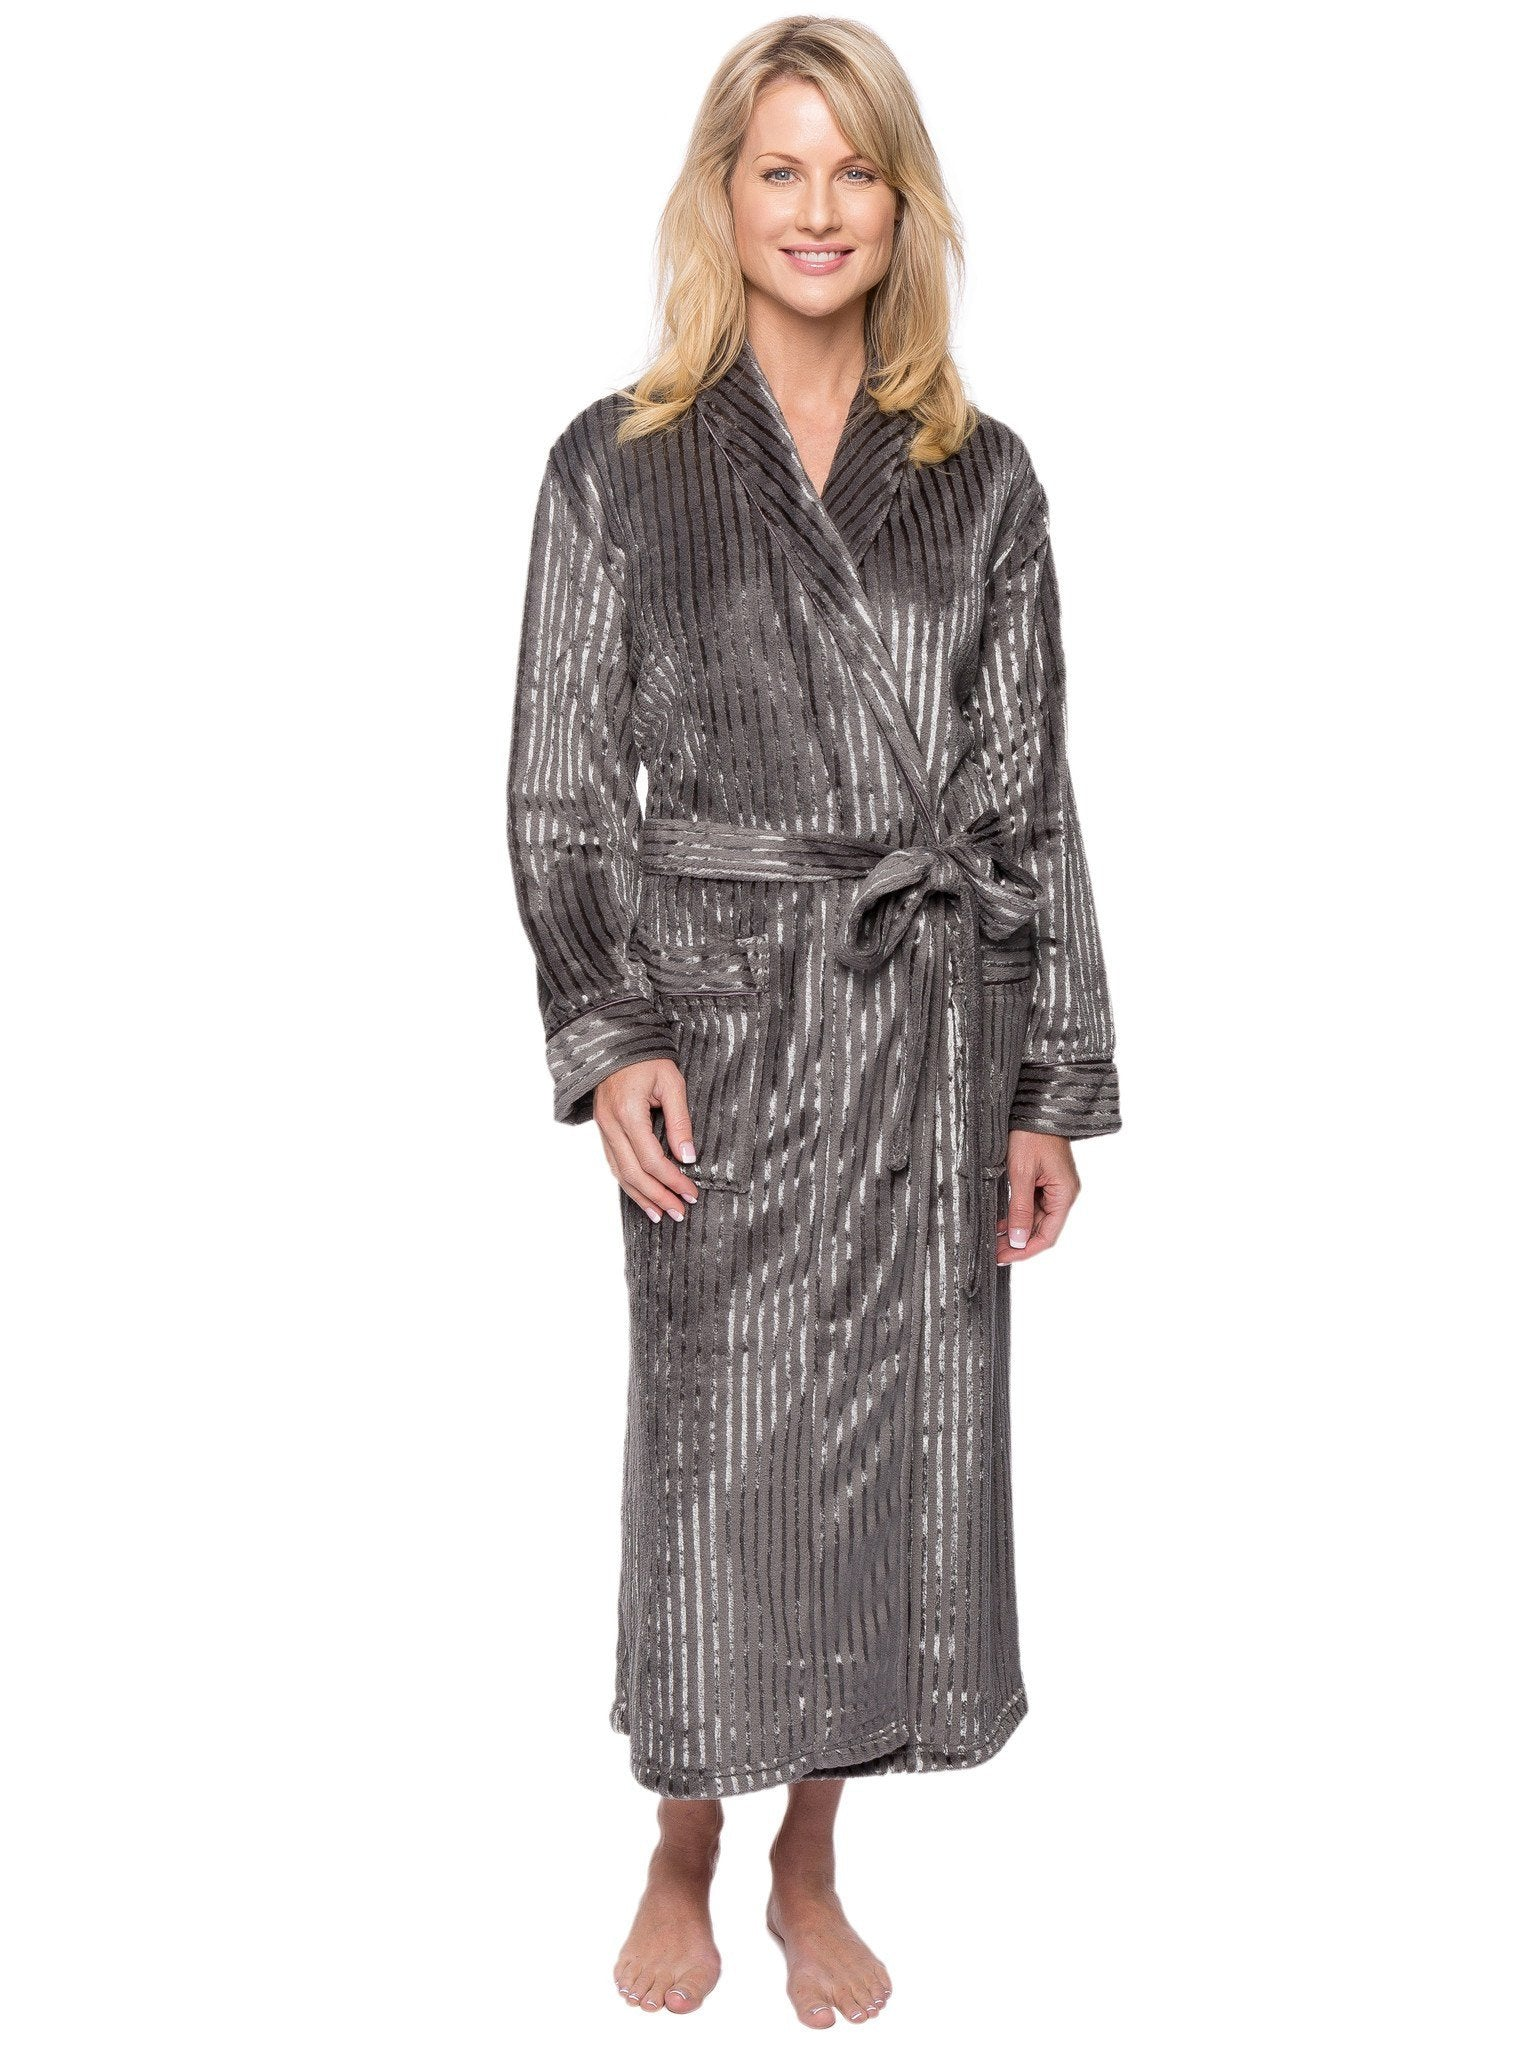 Women's Premium Coral Fleece Plush Spa/Bath Robe - Stripes Dark Grey